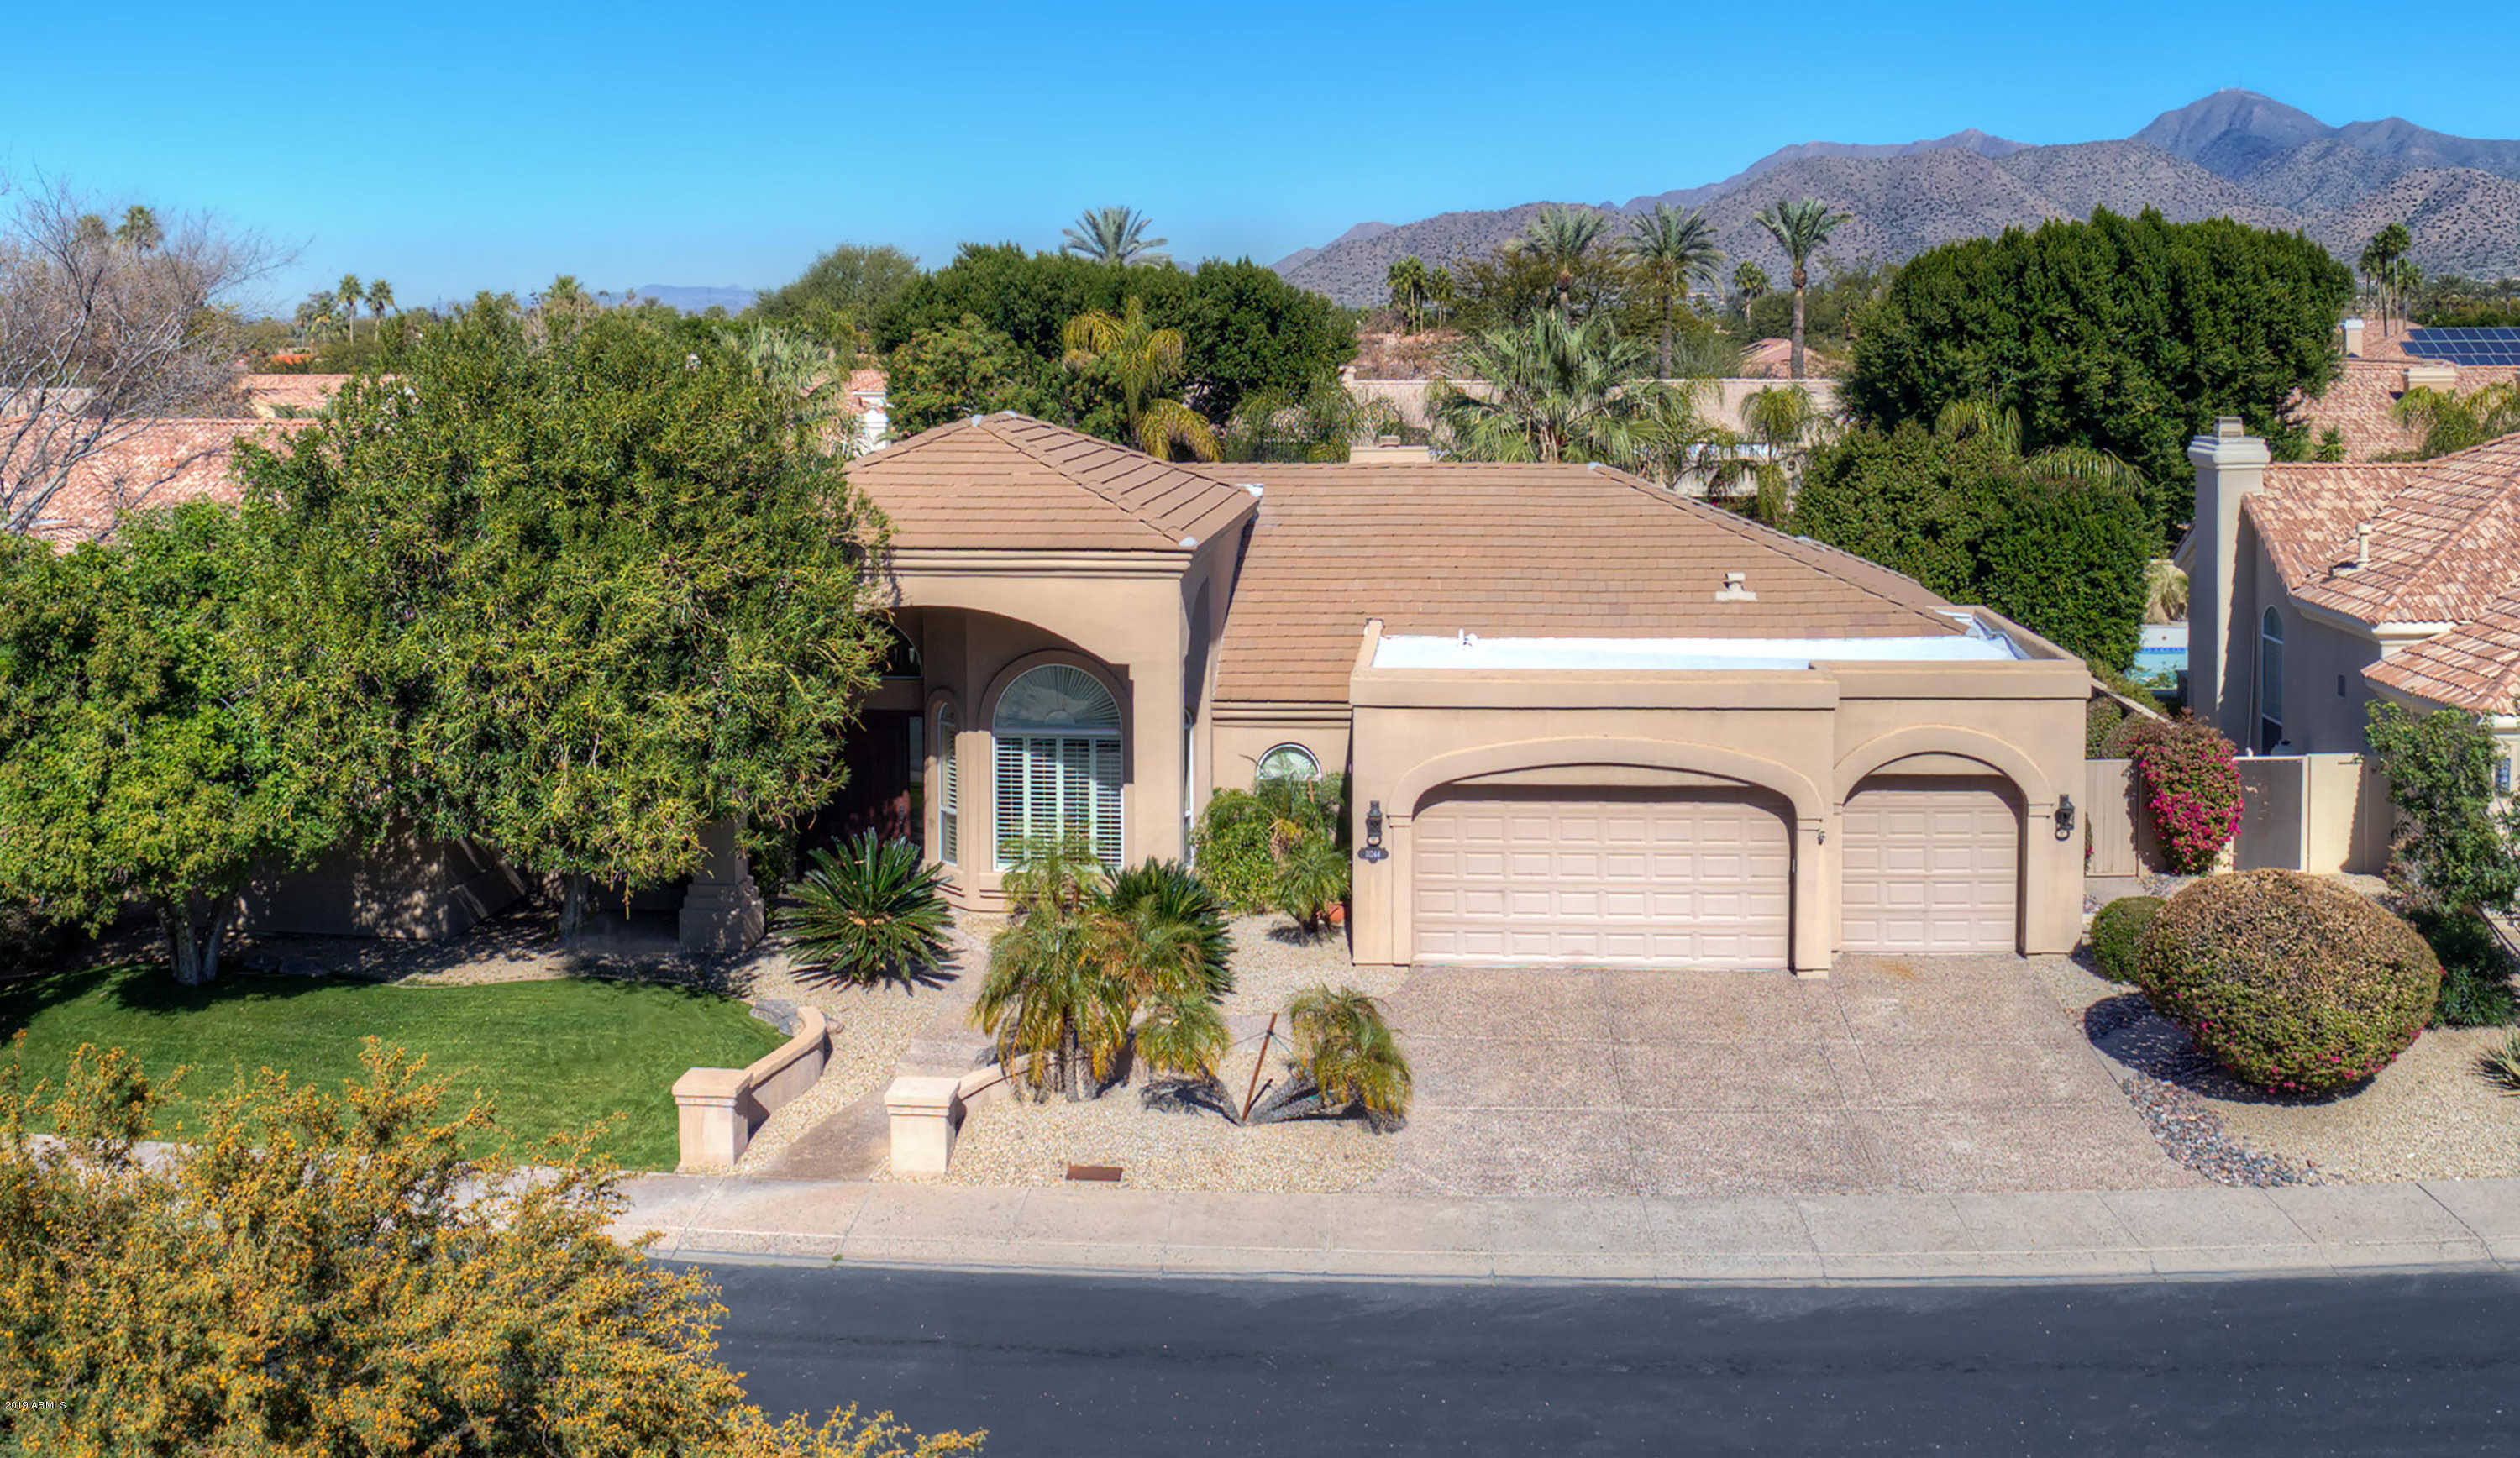 $900,000 - 5Br/3Ba - Home for Sale in Parcel 1 At Stonegate, Scottsdale